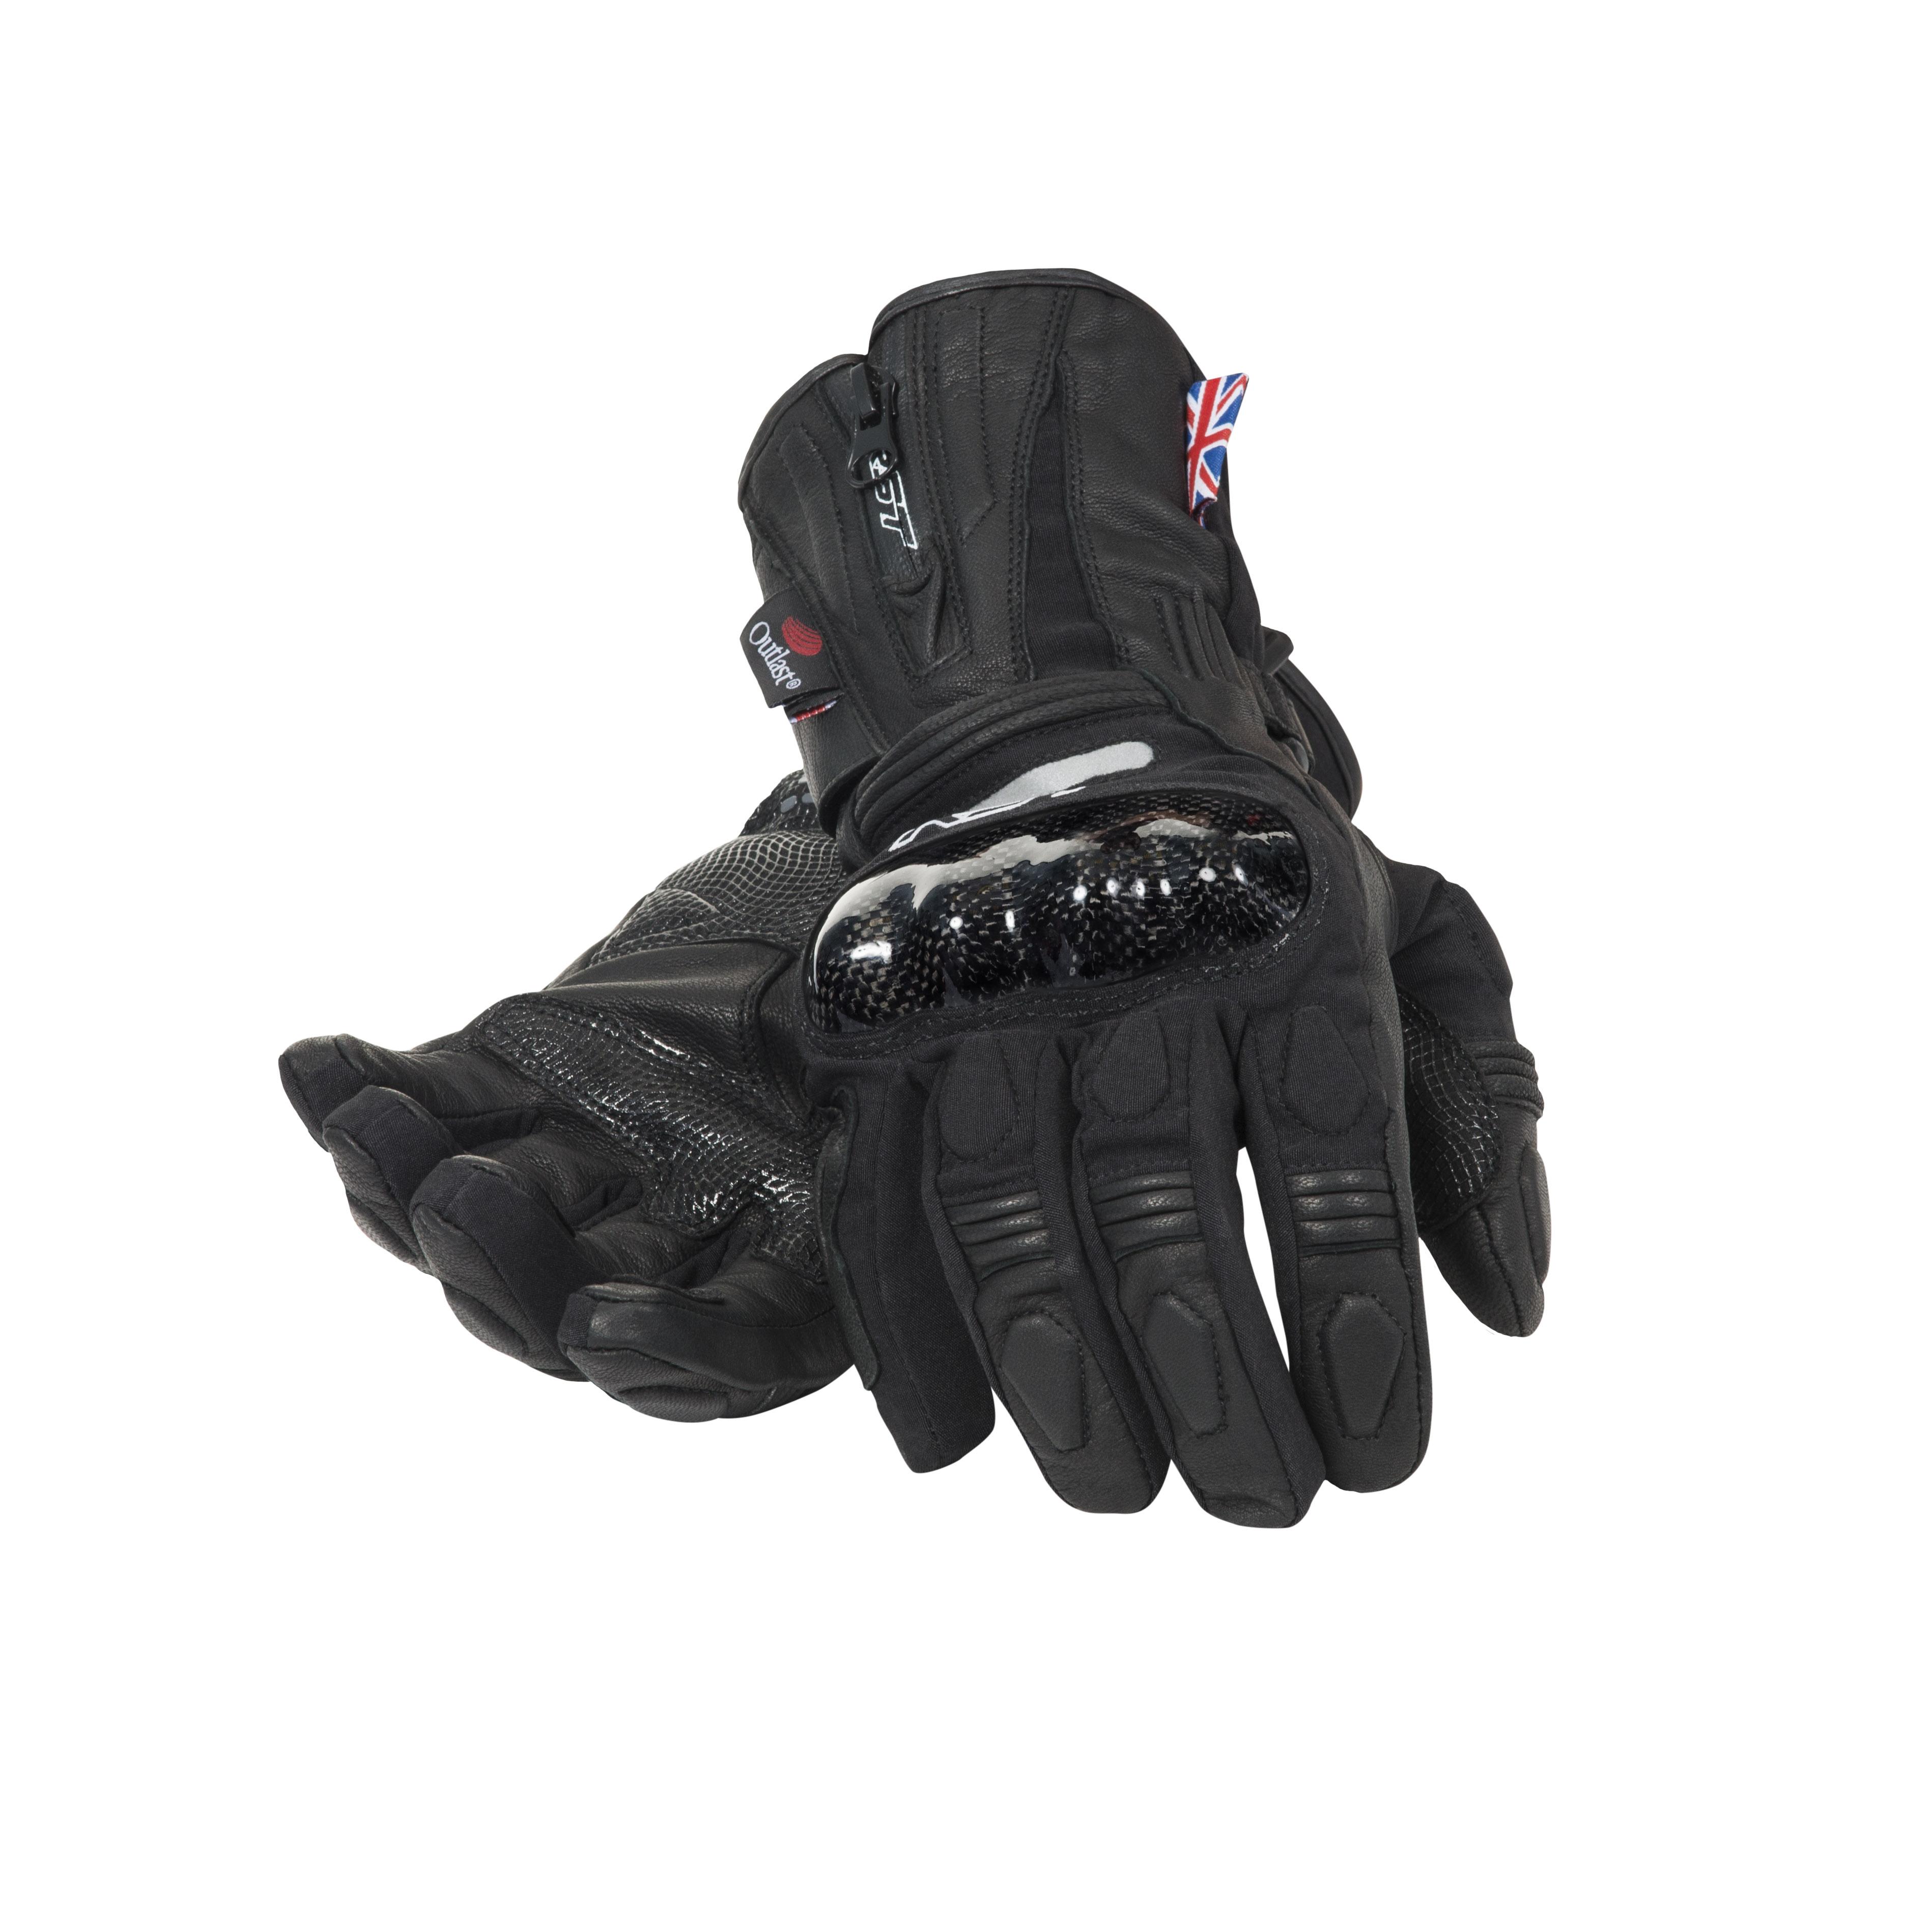 Motorcycle gloves all season - So There S Really No Excuse Not To Be Out And About On Your Bike In Autumn And Winter You Can Really Get Excellent Quality Waterproof Motorcycle Clothing